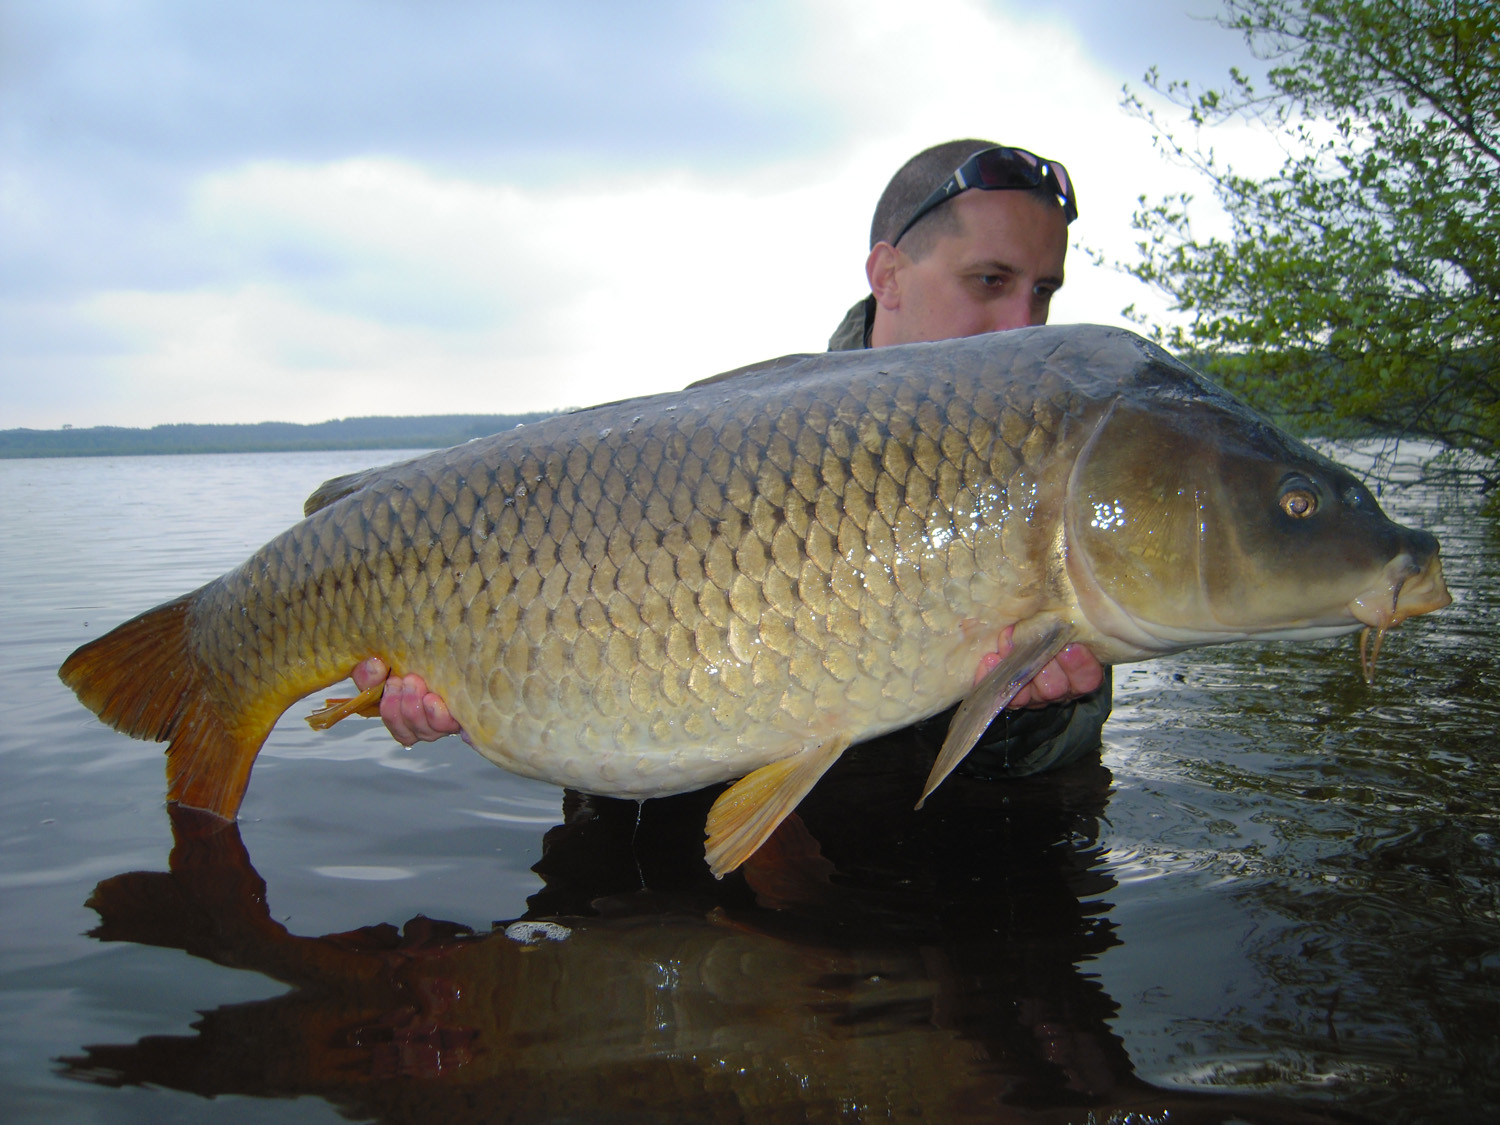 http://starbaits.com/fichiers/images/team/gallery/COLLET_Jerome/8 Jérôme Collet.jpg